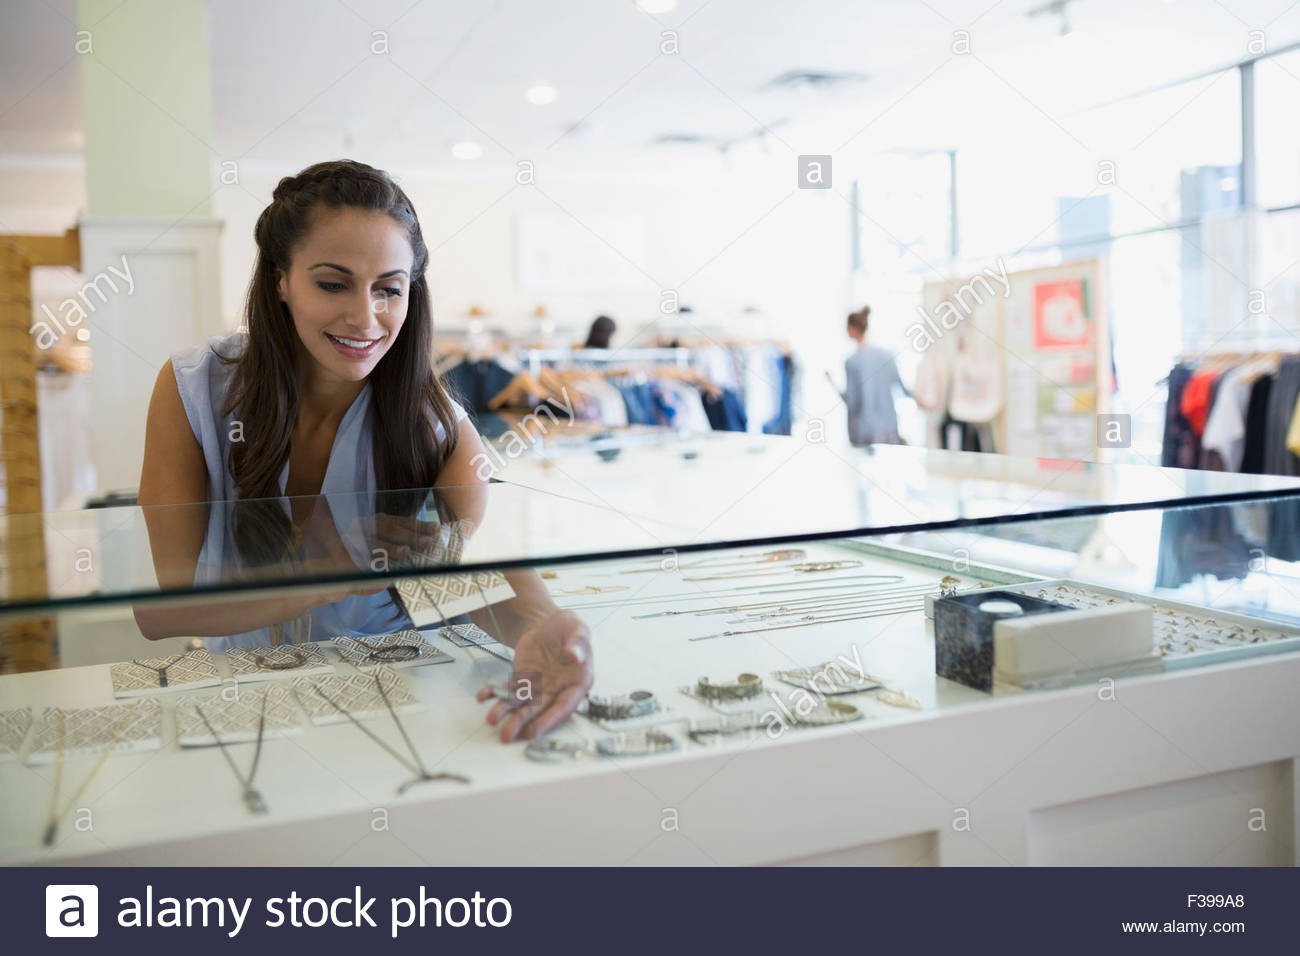 Worker arranging jewelry display case in shop - Stock Image